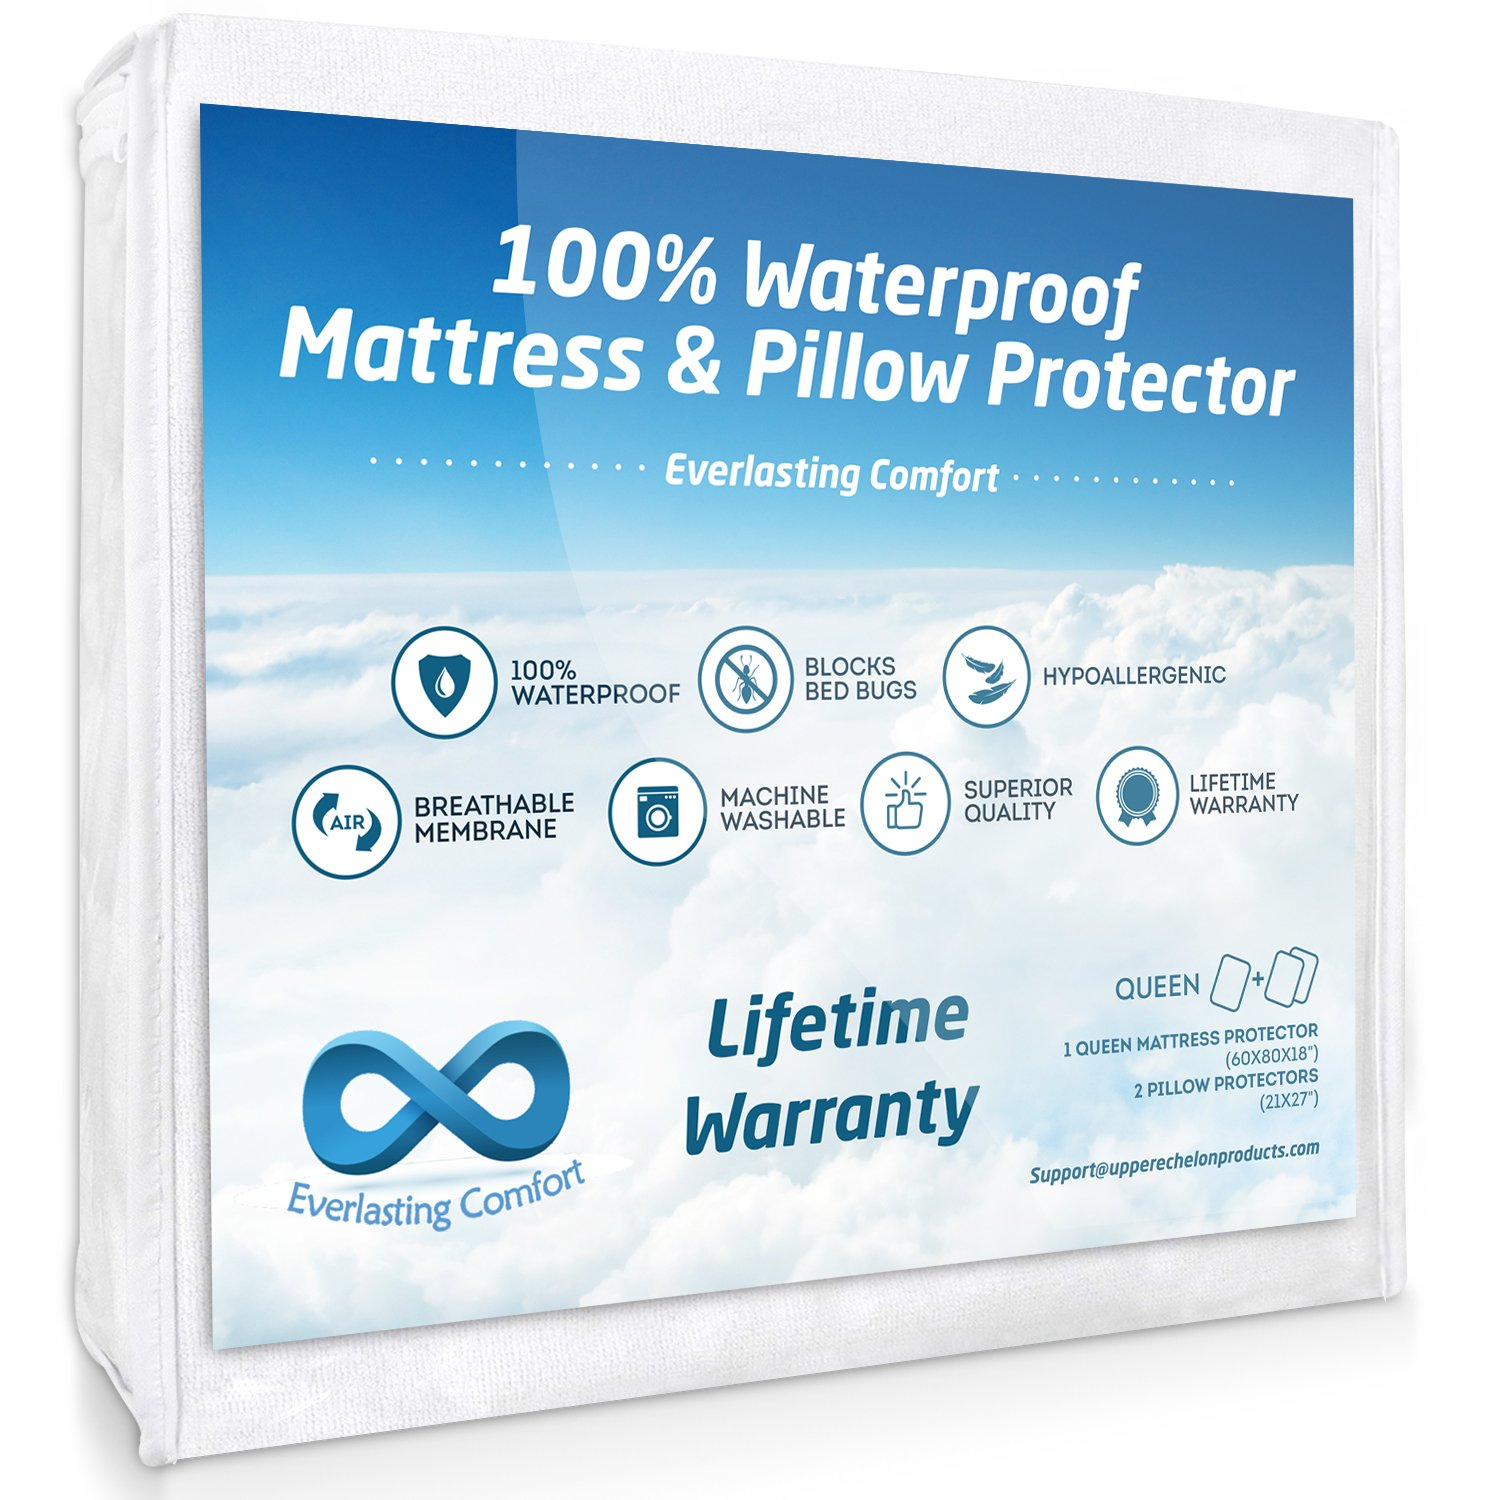 100% Waterproof Mattress Protector (Queen) and 2 Free Pillow Protectors. Complete Set, Hypoallergenic, Breathable Membrane by Everlasting Comfort